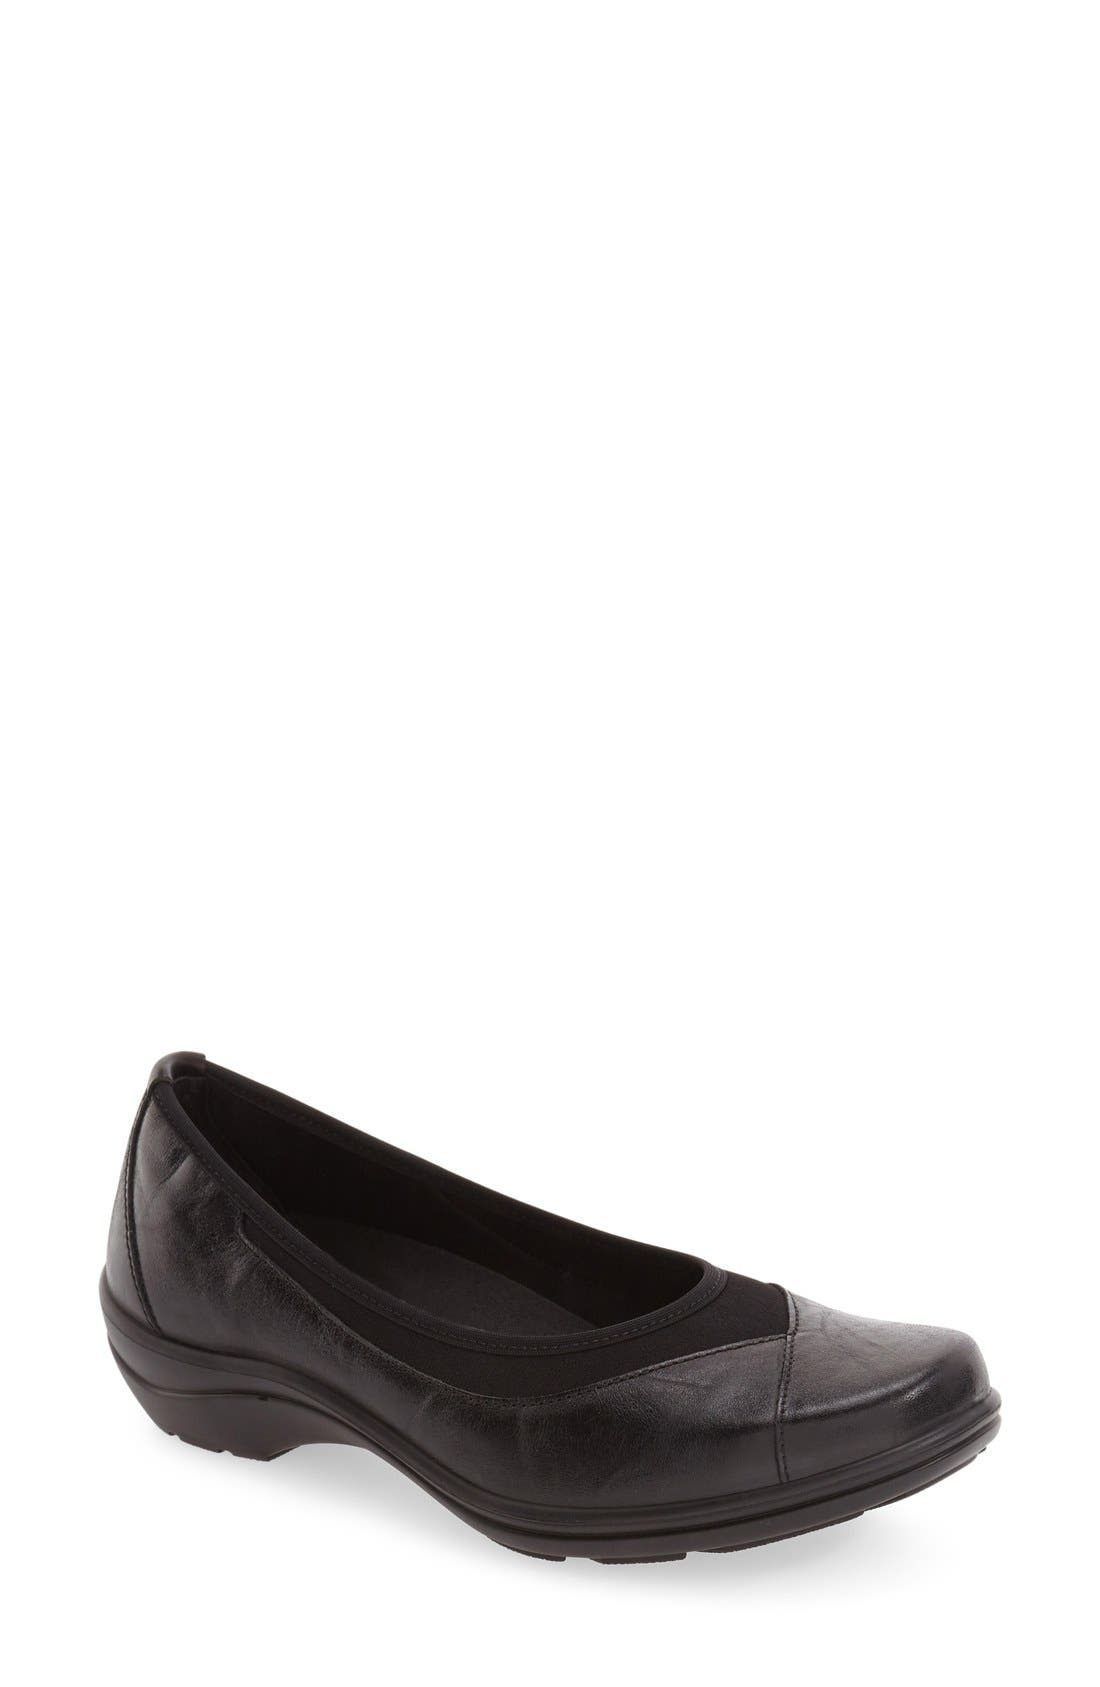 'Cassie 21' Wedge Flat,                             Main thumbnail 1, color,                             Black Leather